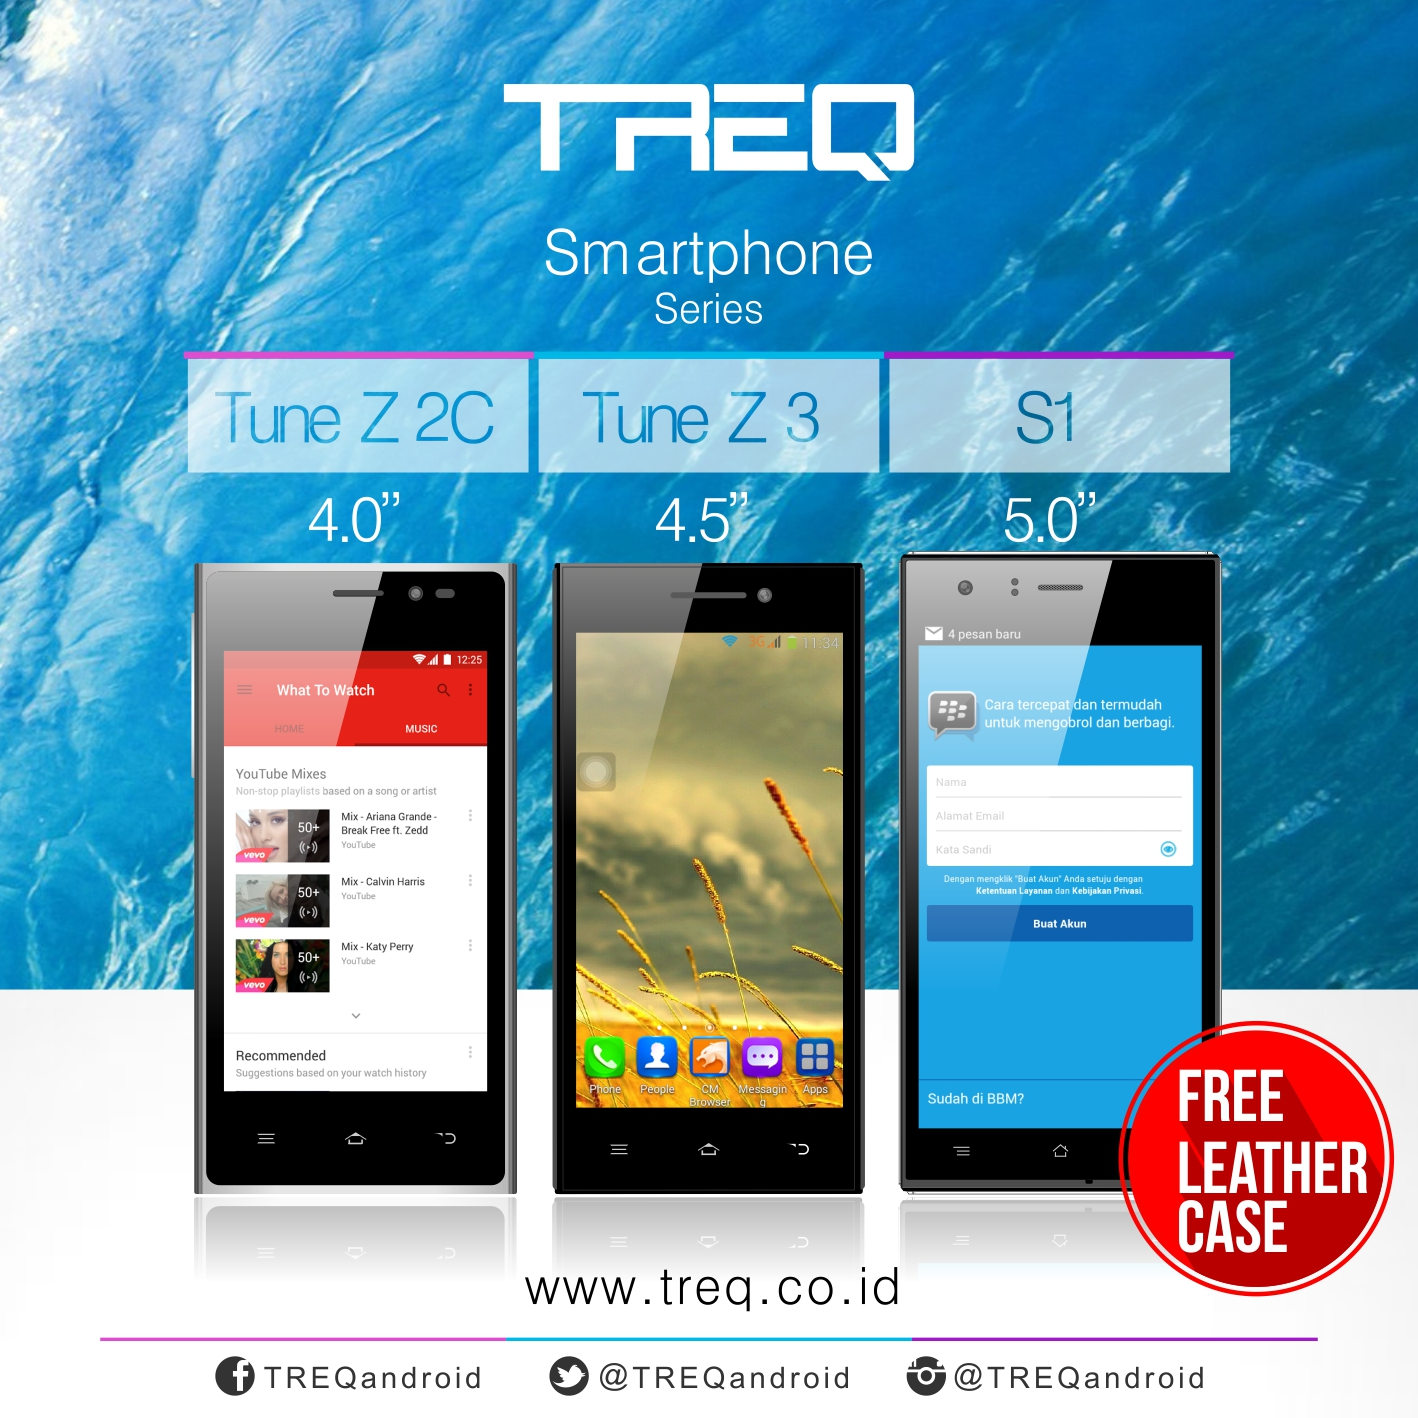 Gratis Leather case Treq S1, Tune Z2C, Z3